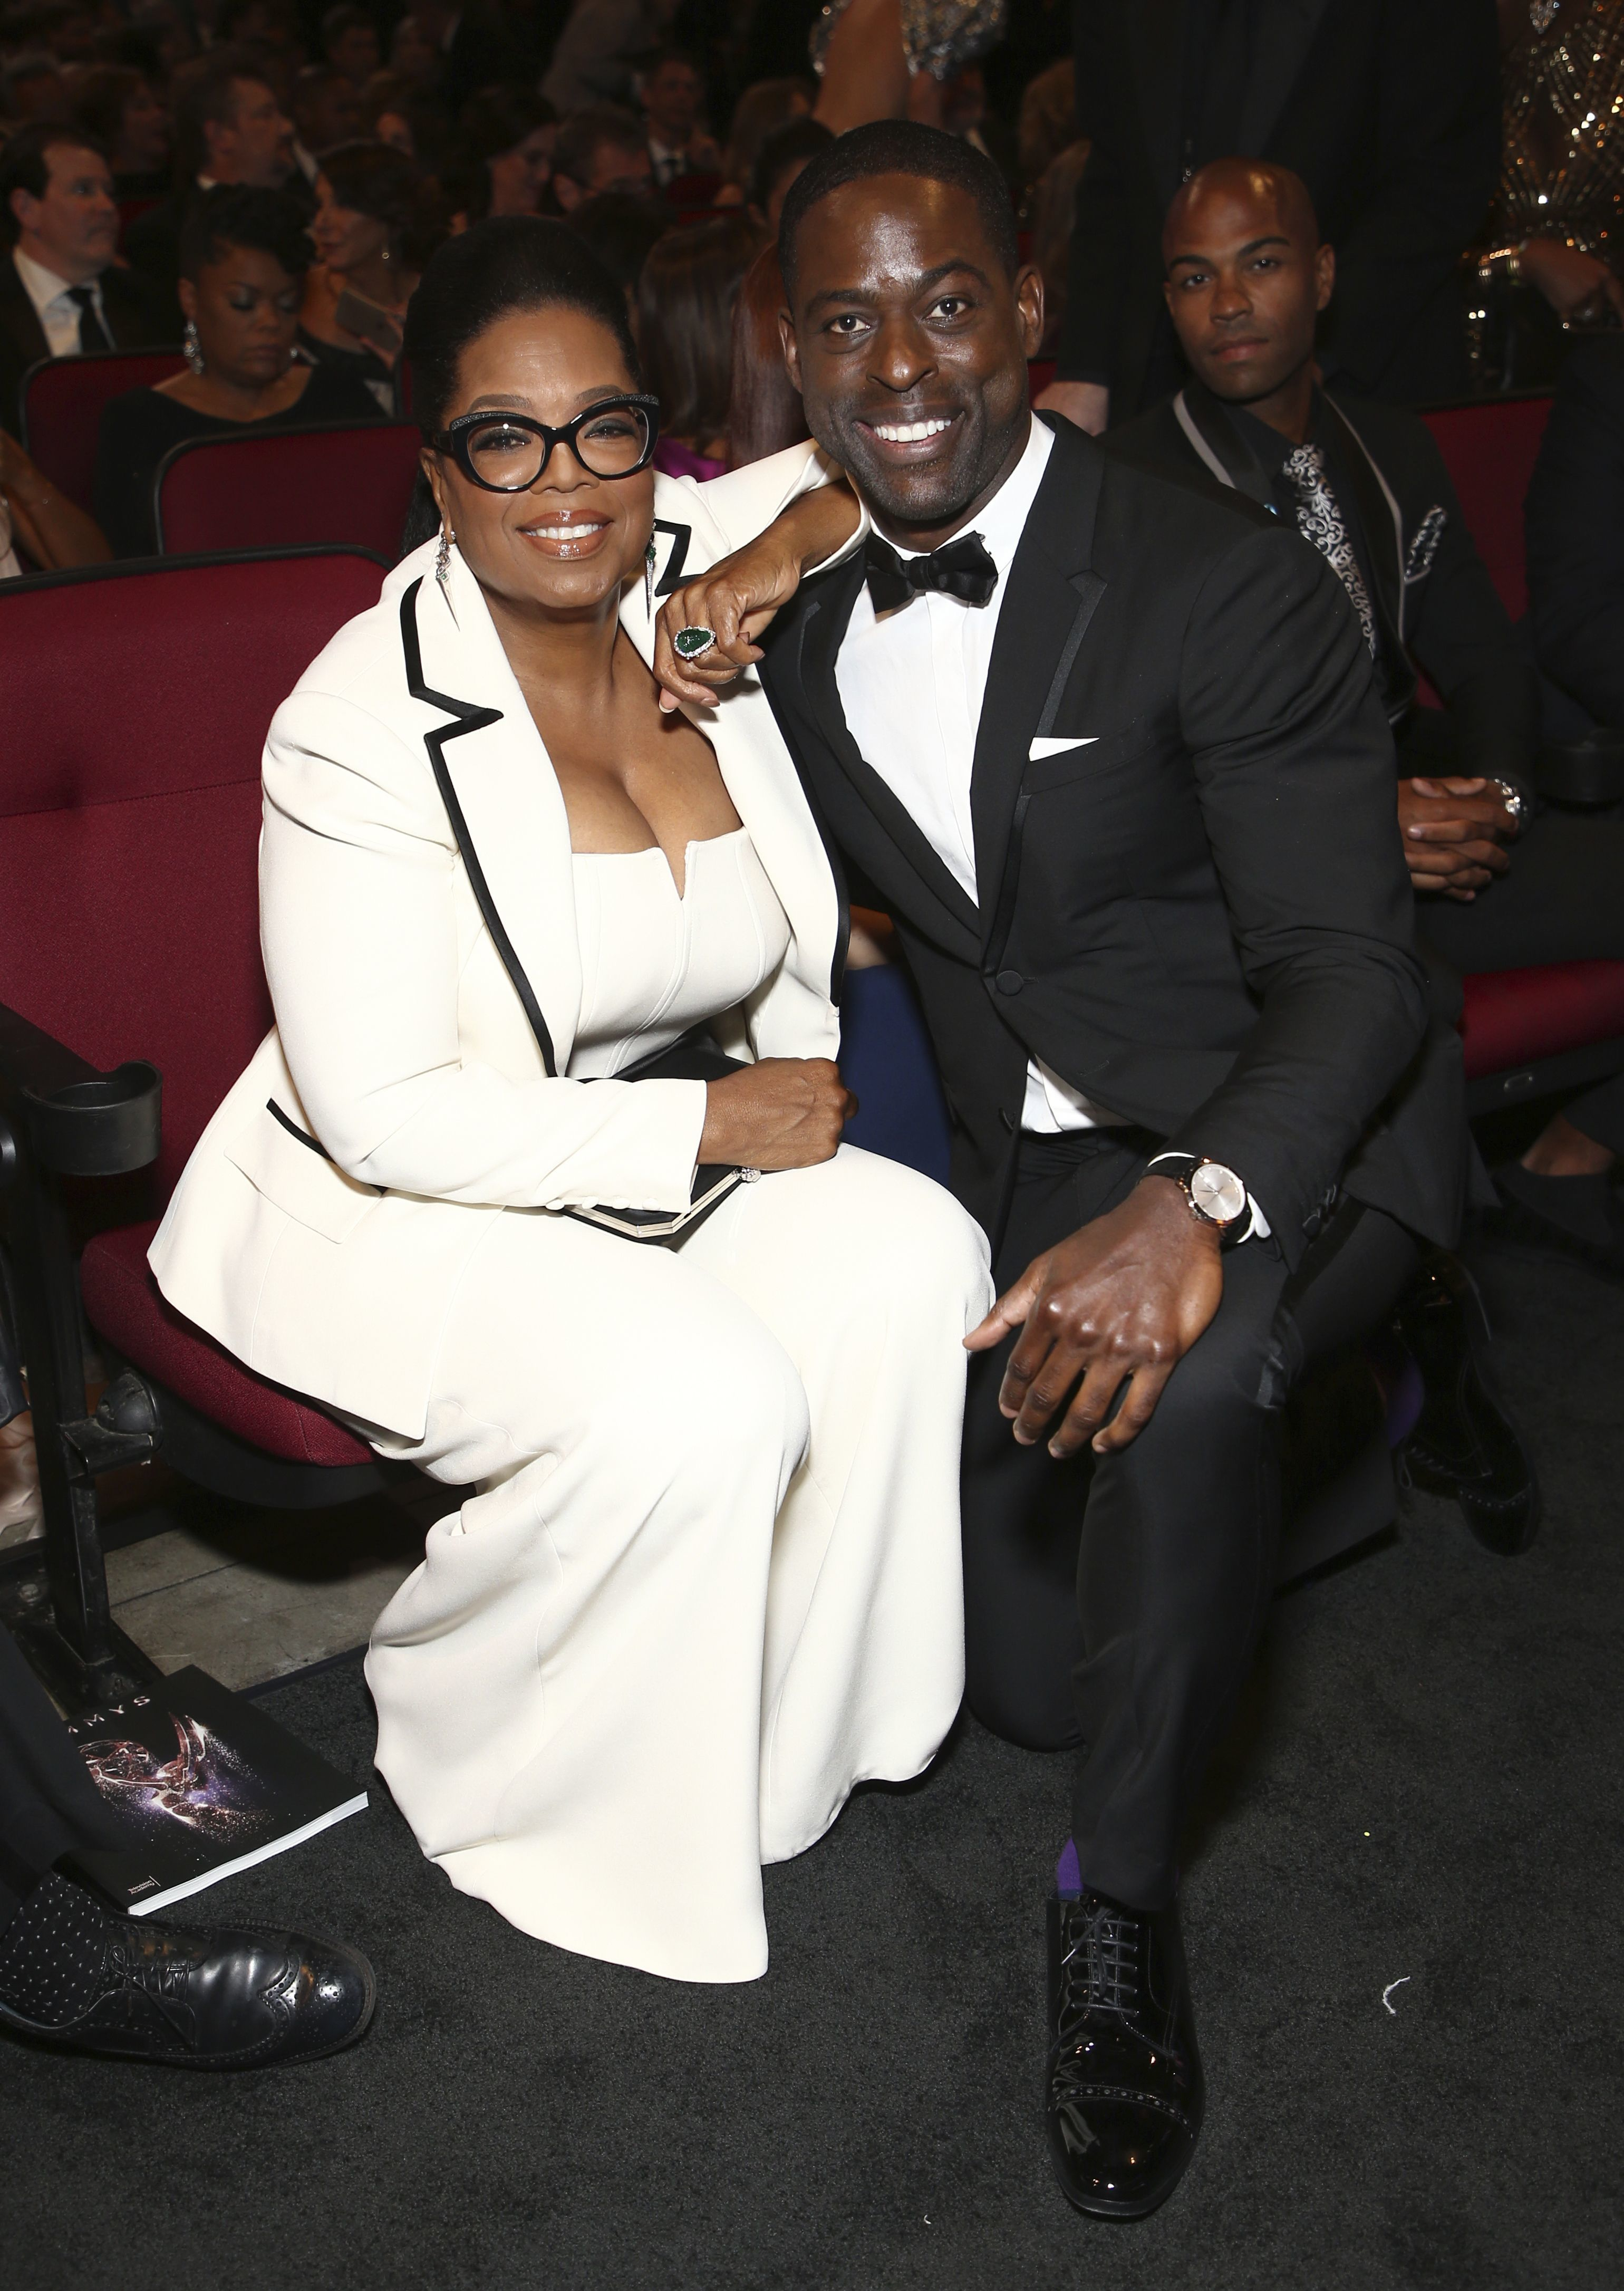 Oprah Winfrey and  Sterling K. Brown attend the 69th Primetime Emmy Awards in Los Angeles on Sept. 17, 2017.